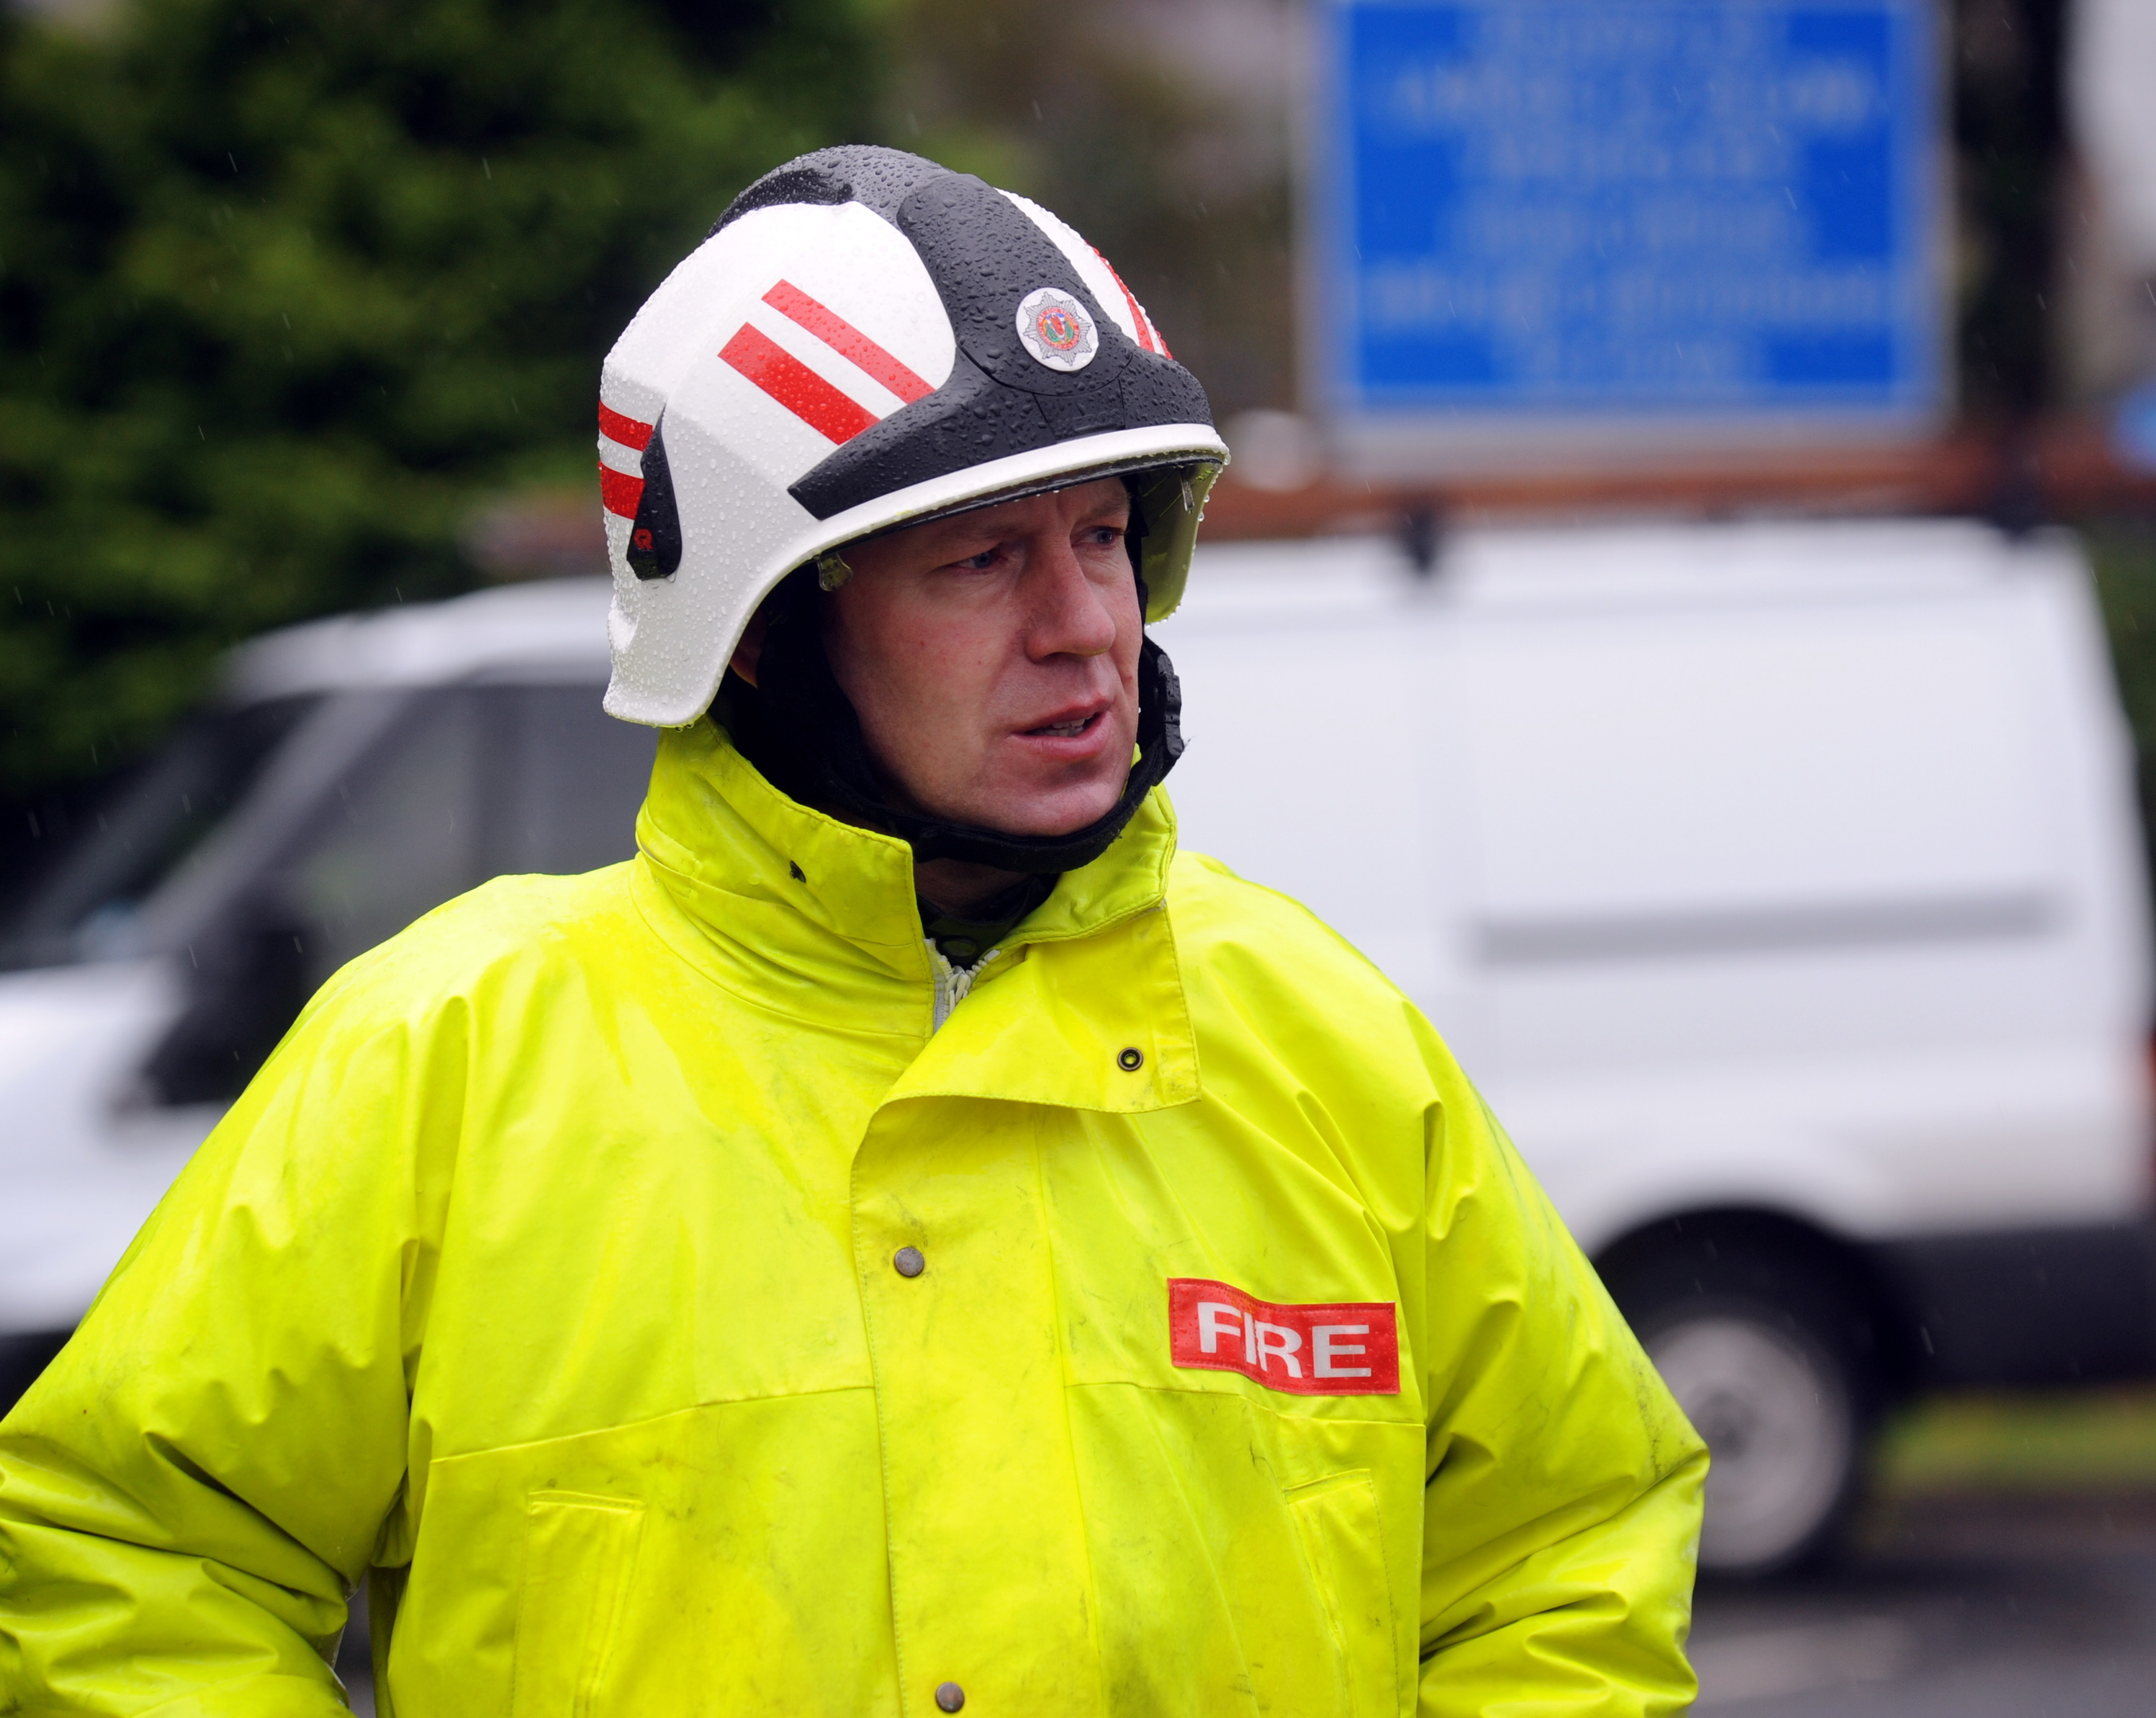 Local senior officer for Aberdeenshire and Moray David Rout at the scene of a flood in 2009. Picture by Jim Irvine.